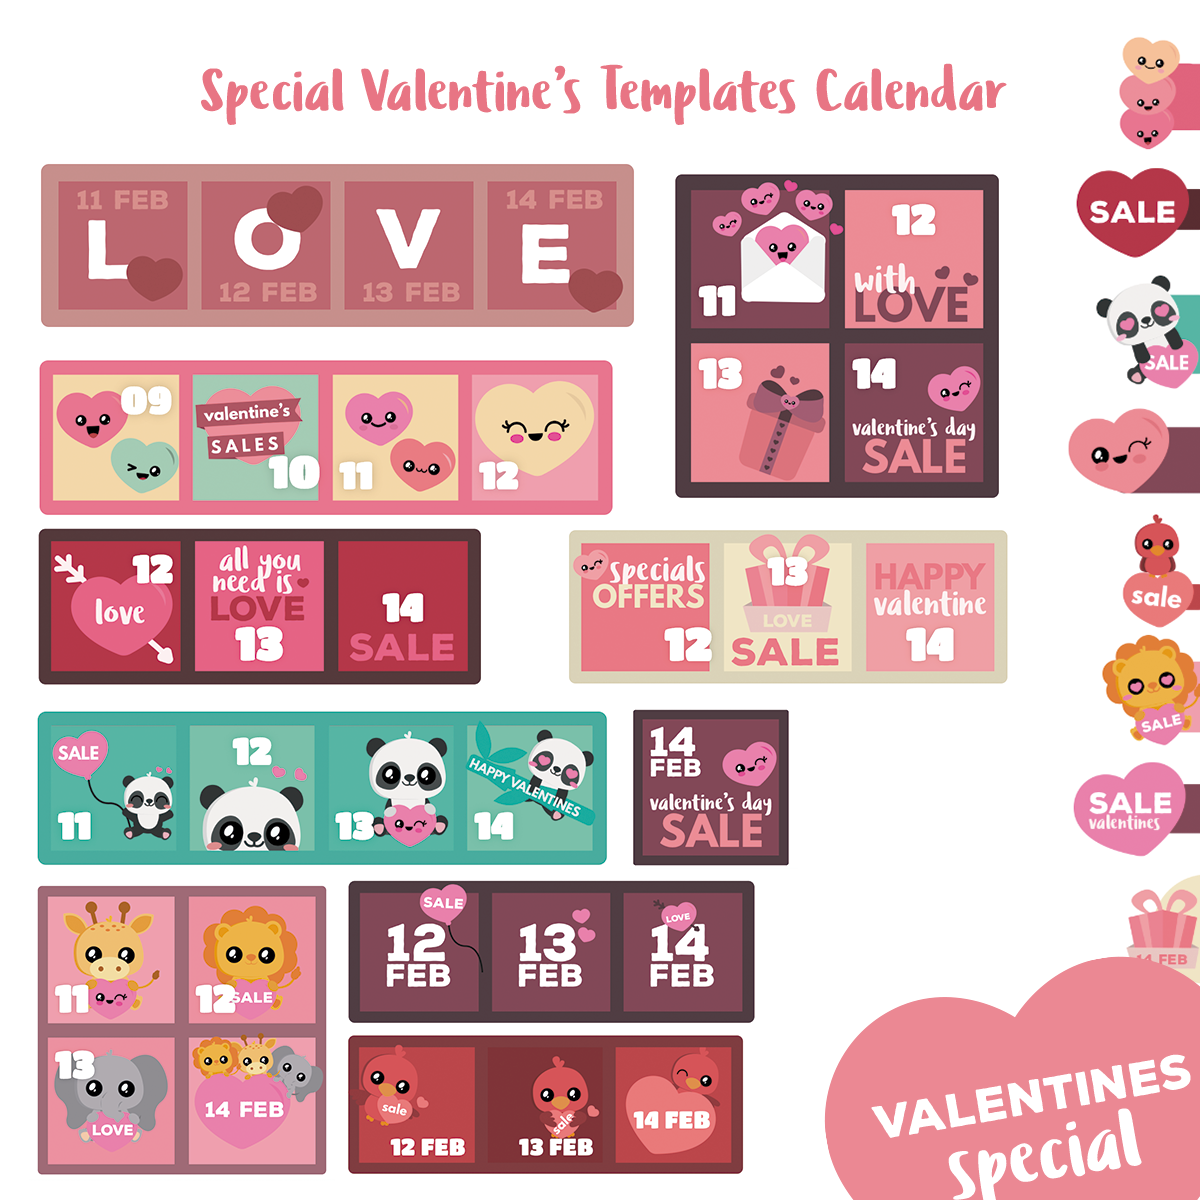 Deals Calendar - WordPress Plugin - Special Valentine's Day - 1